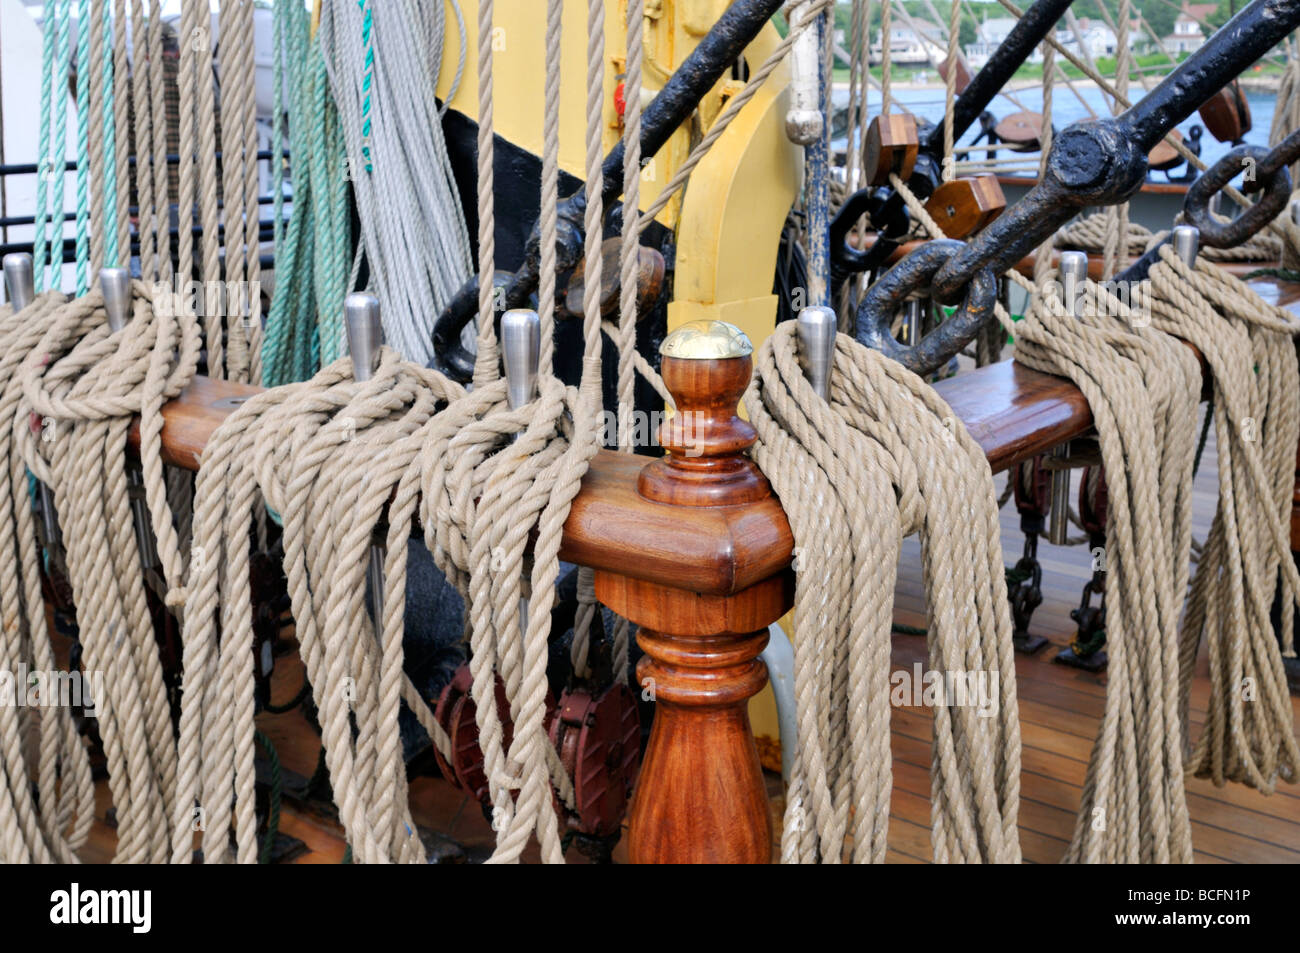 Sailing tall ships rigging lines coiled on posts - Stock Image